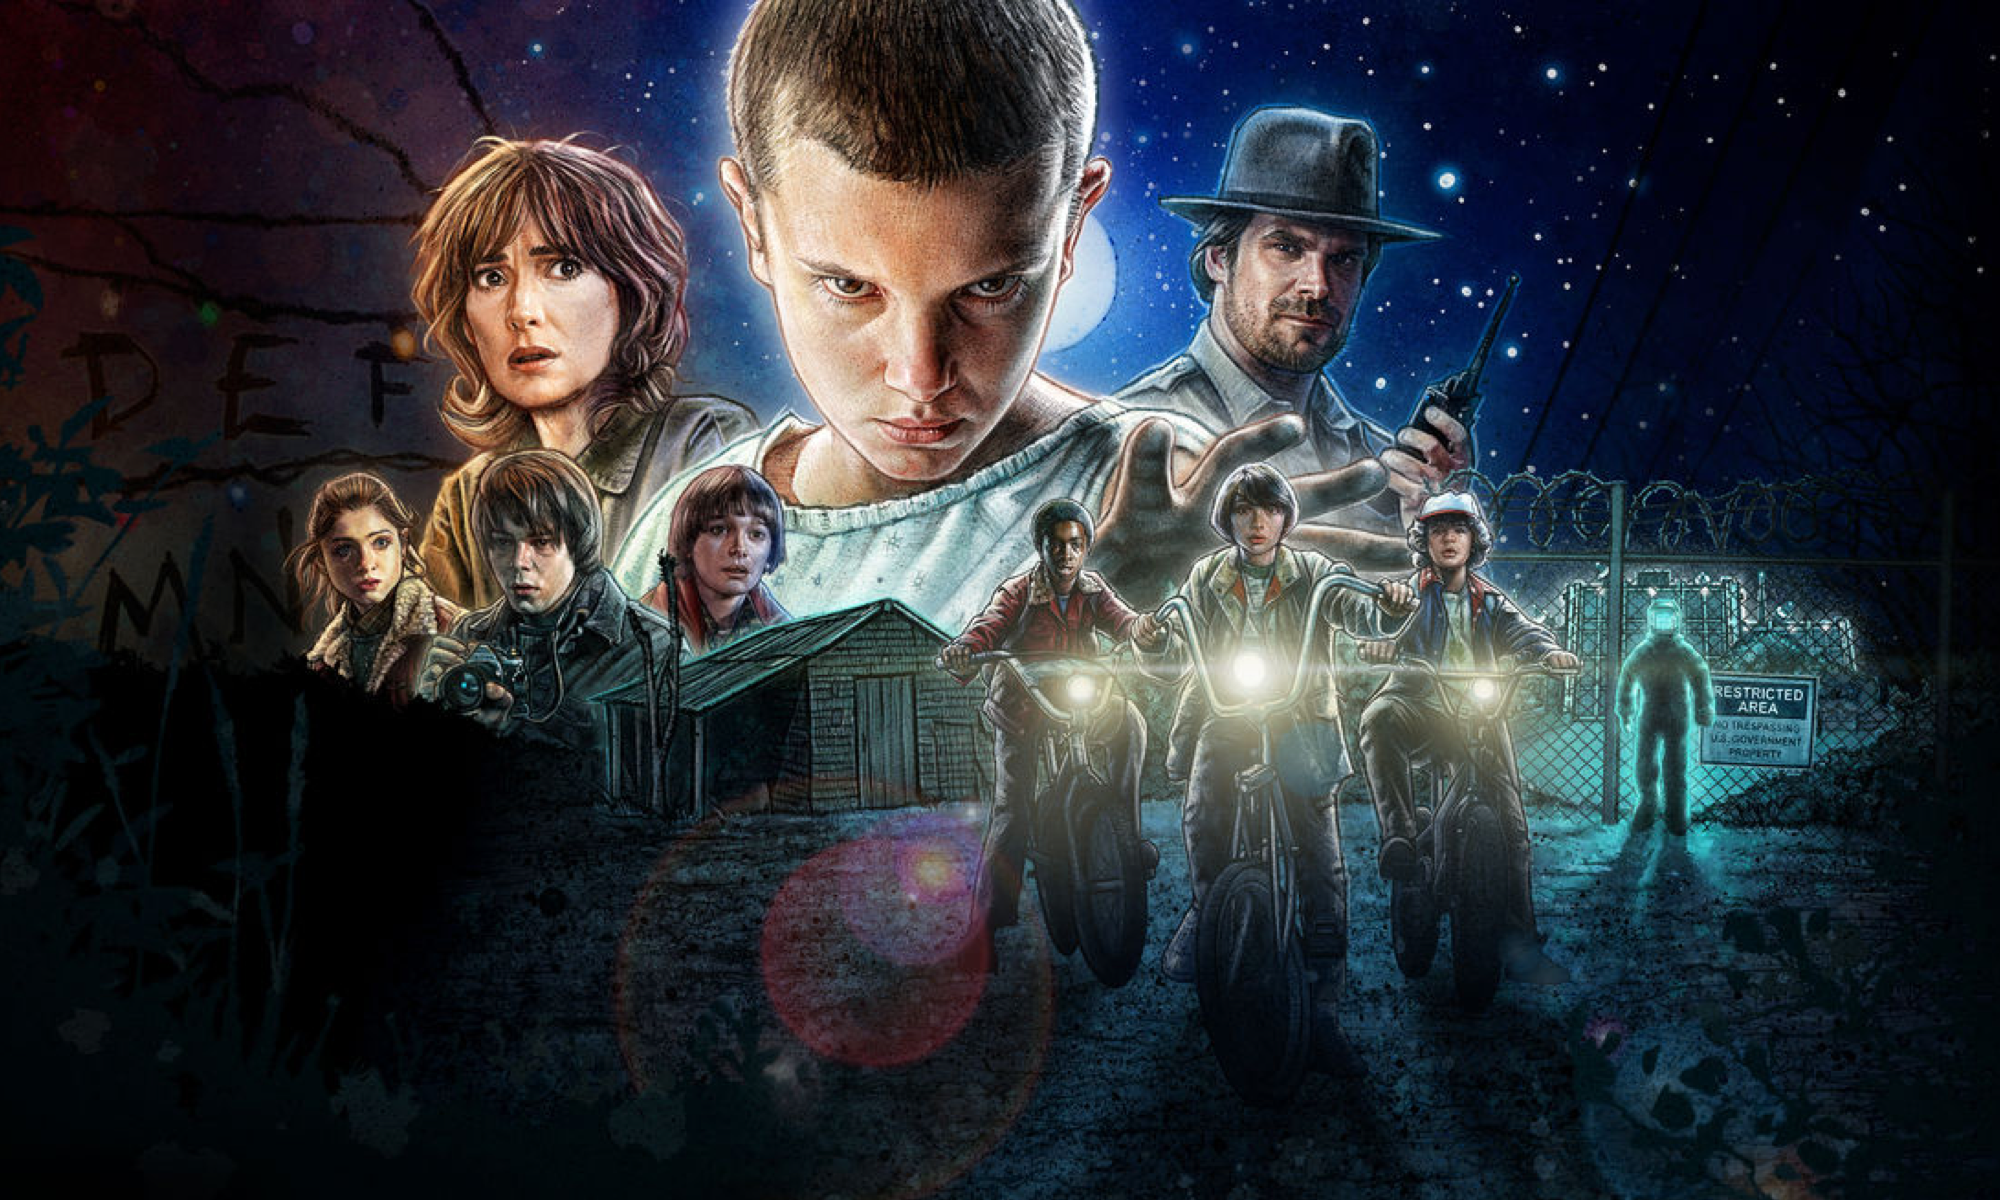 Which Stranger Things Character Are You? Take this quiz and find out today!